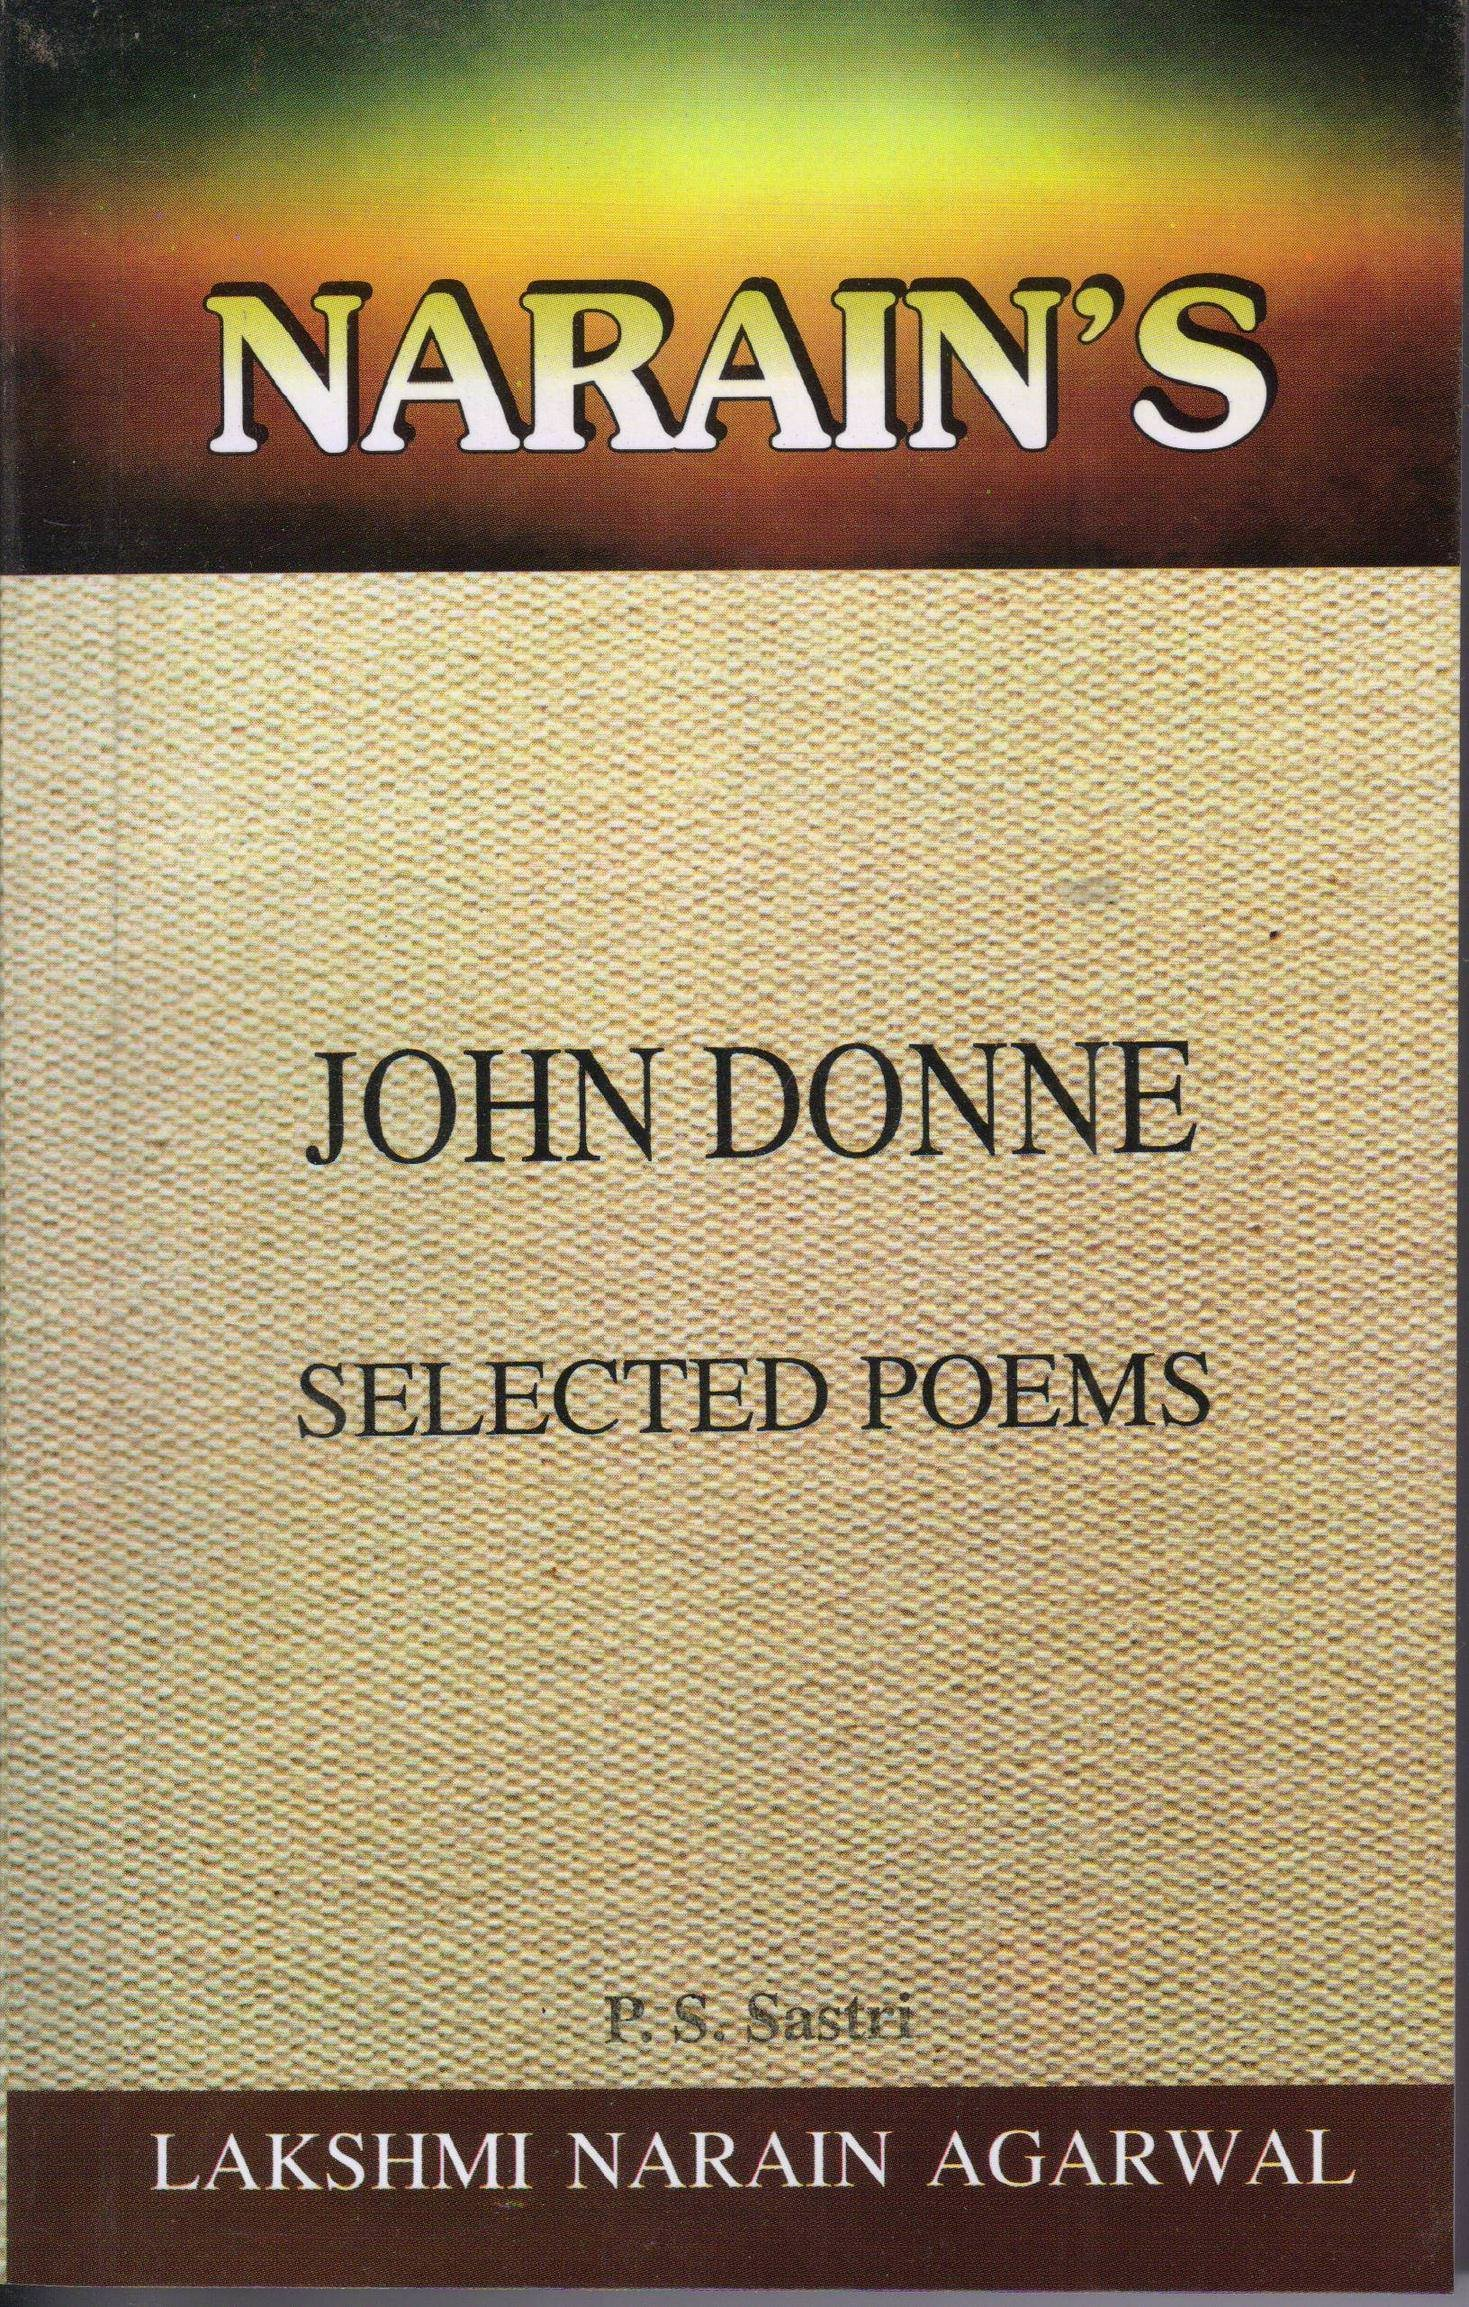 Amazon.in: Buy SELECTED POEMS WITH HINDI * (Text with Notes) Book Online at  Low Prices in India | SELECTED POEMS WITH HINDI * (Text with Notes) Reviews  & Ratings